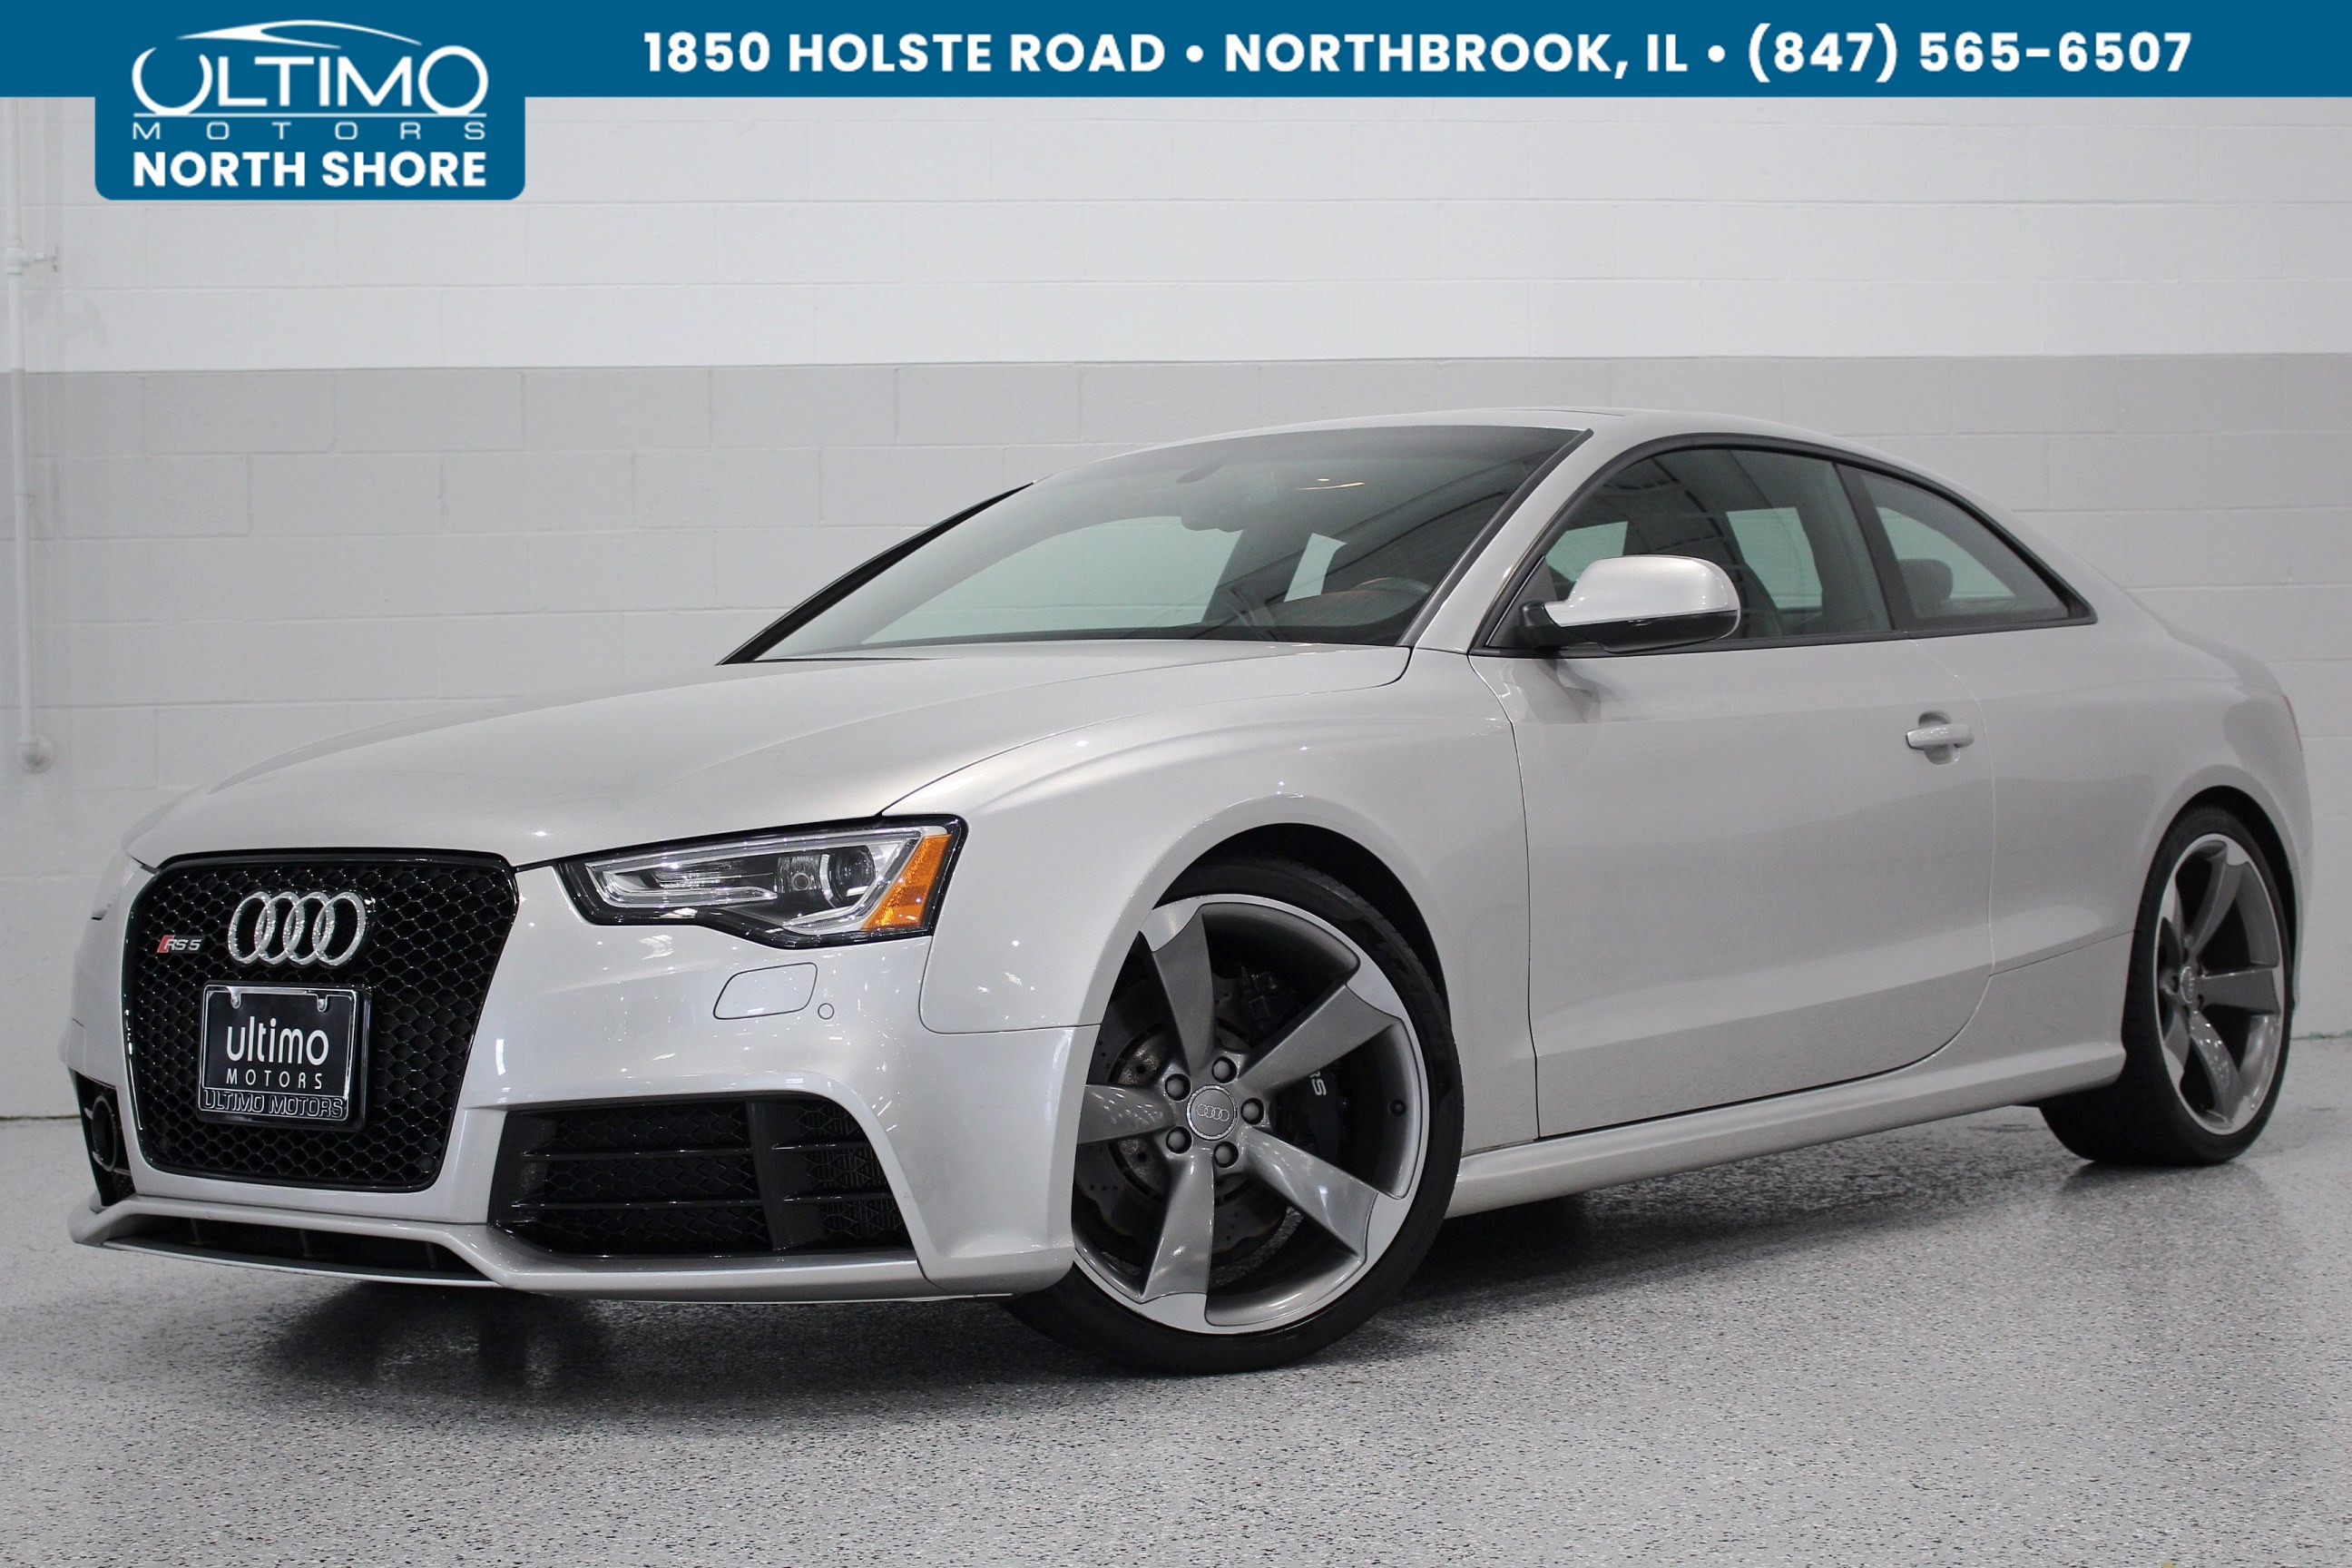 Pre-Owned 2013 Audi RS 5 MMI w/ Nav.+ B&O Driver Assist Titanium Package Sports Exhaust MSRP $81,170